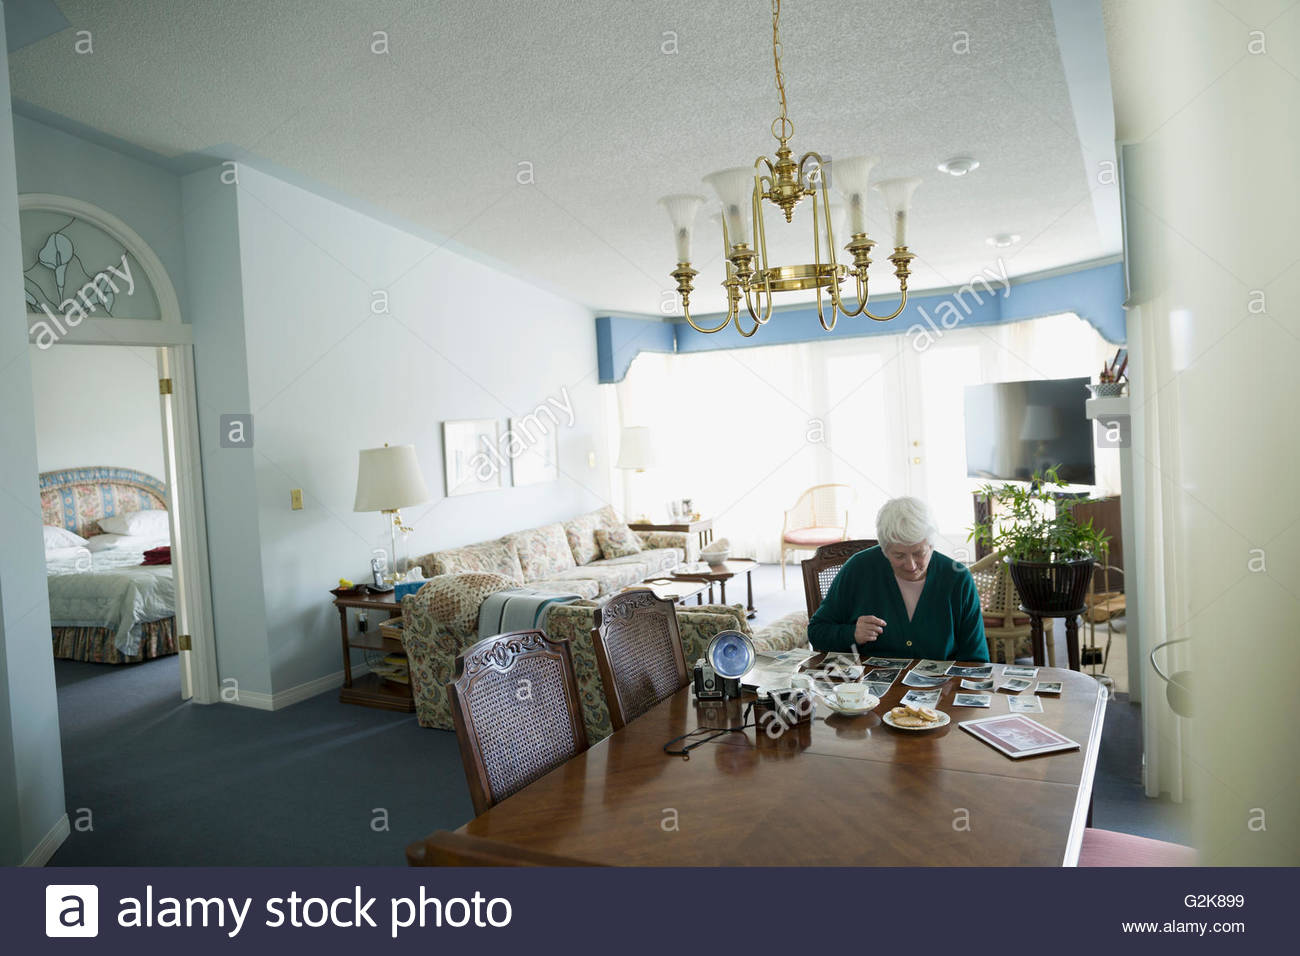 Senior woman looking at old photographs at dining room table - Stock Image